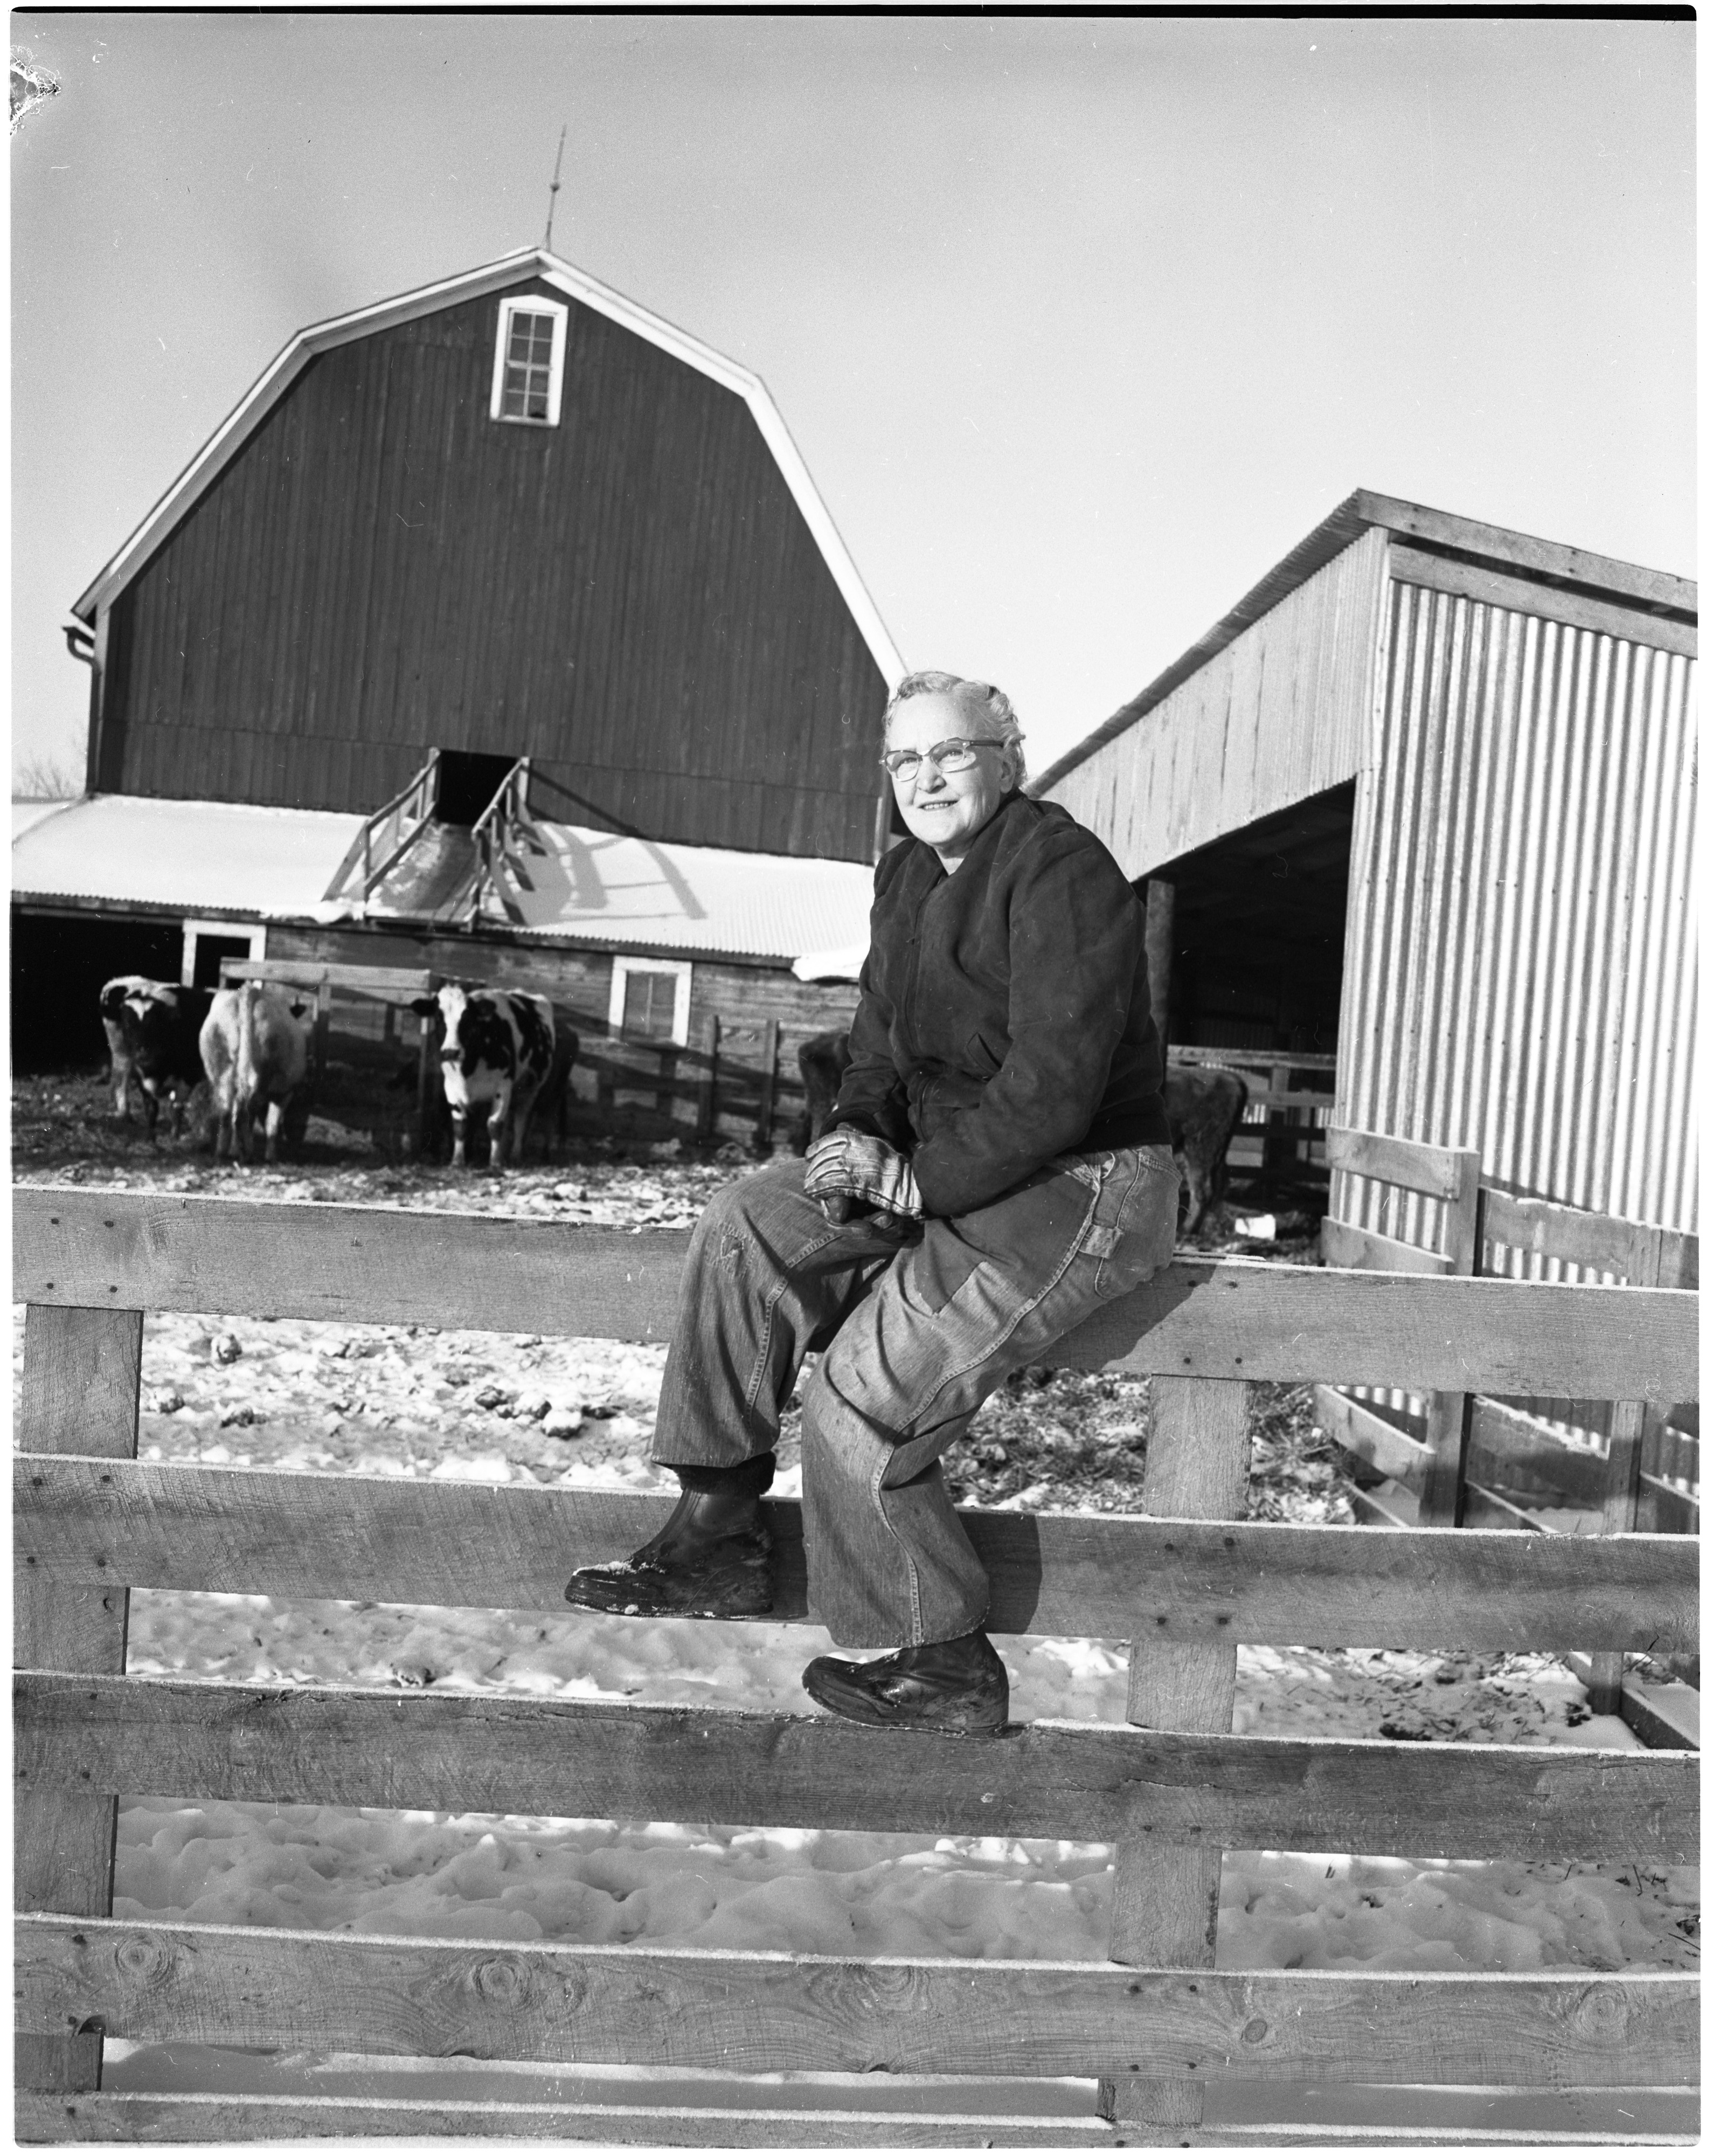 Dr. L. Dell Henry On Her Farm, January 1957 image